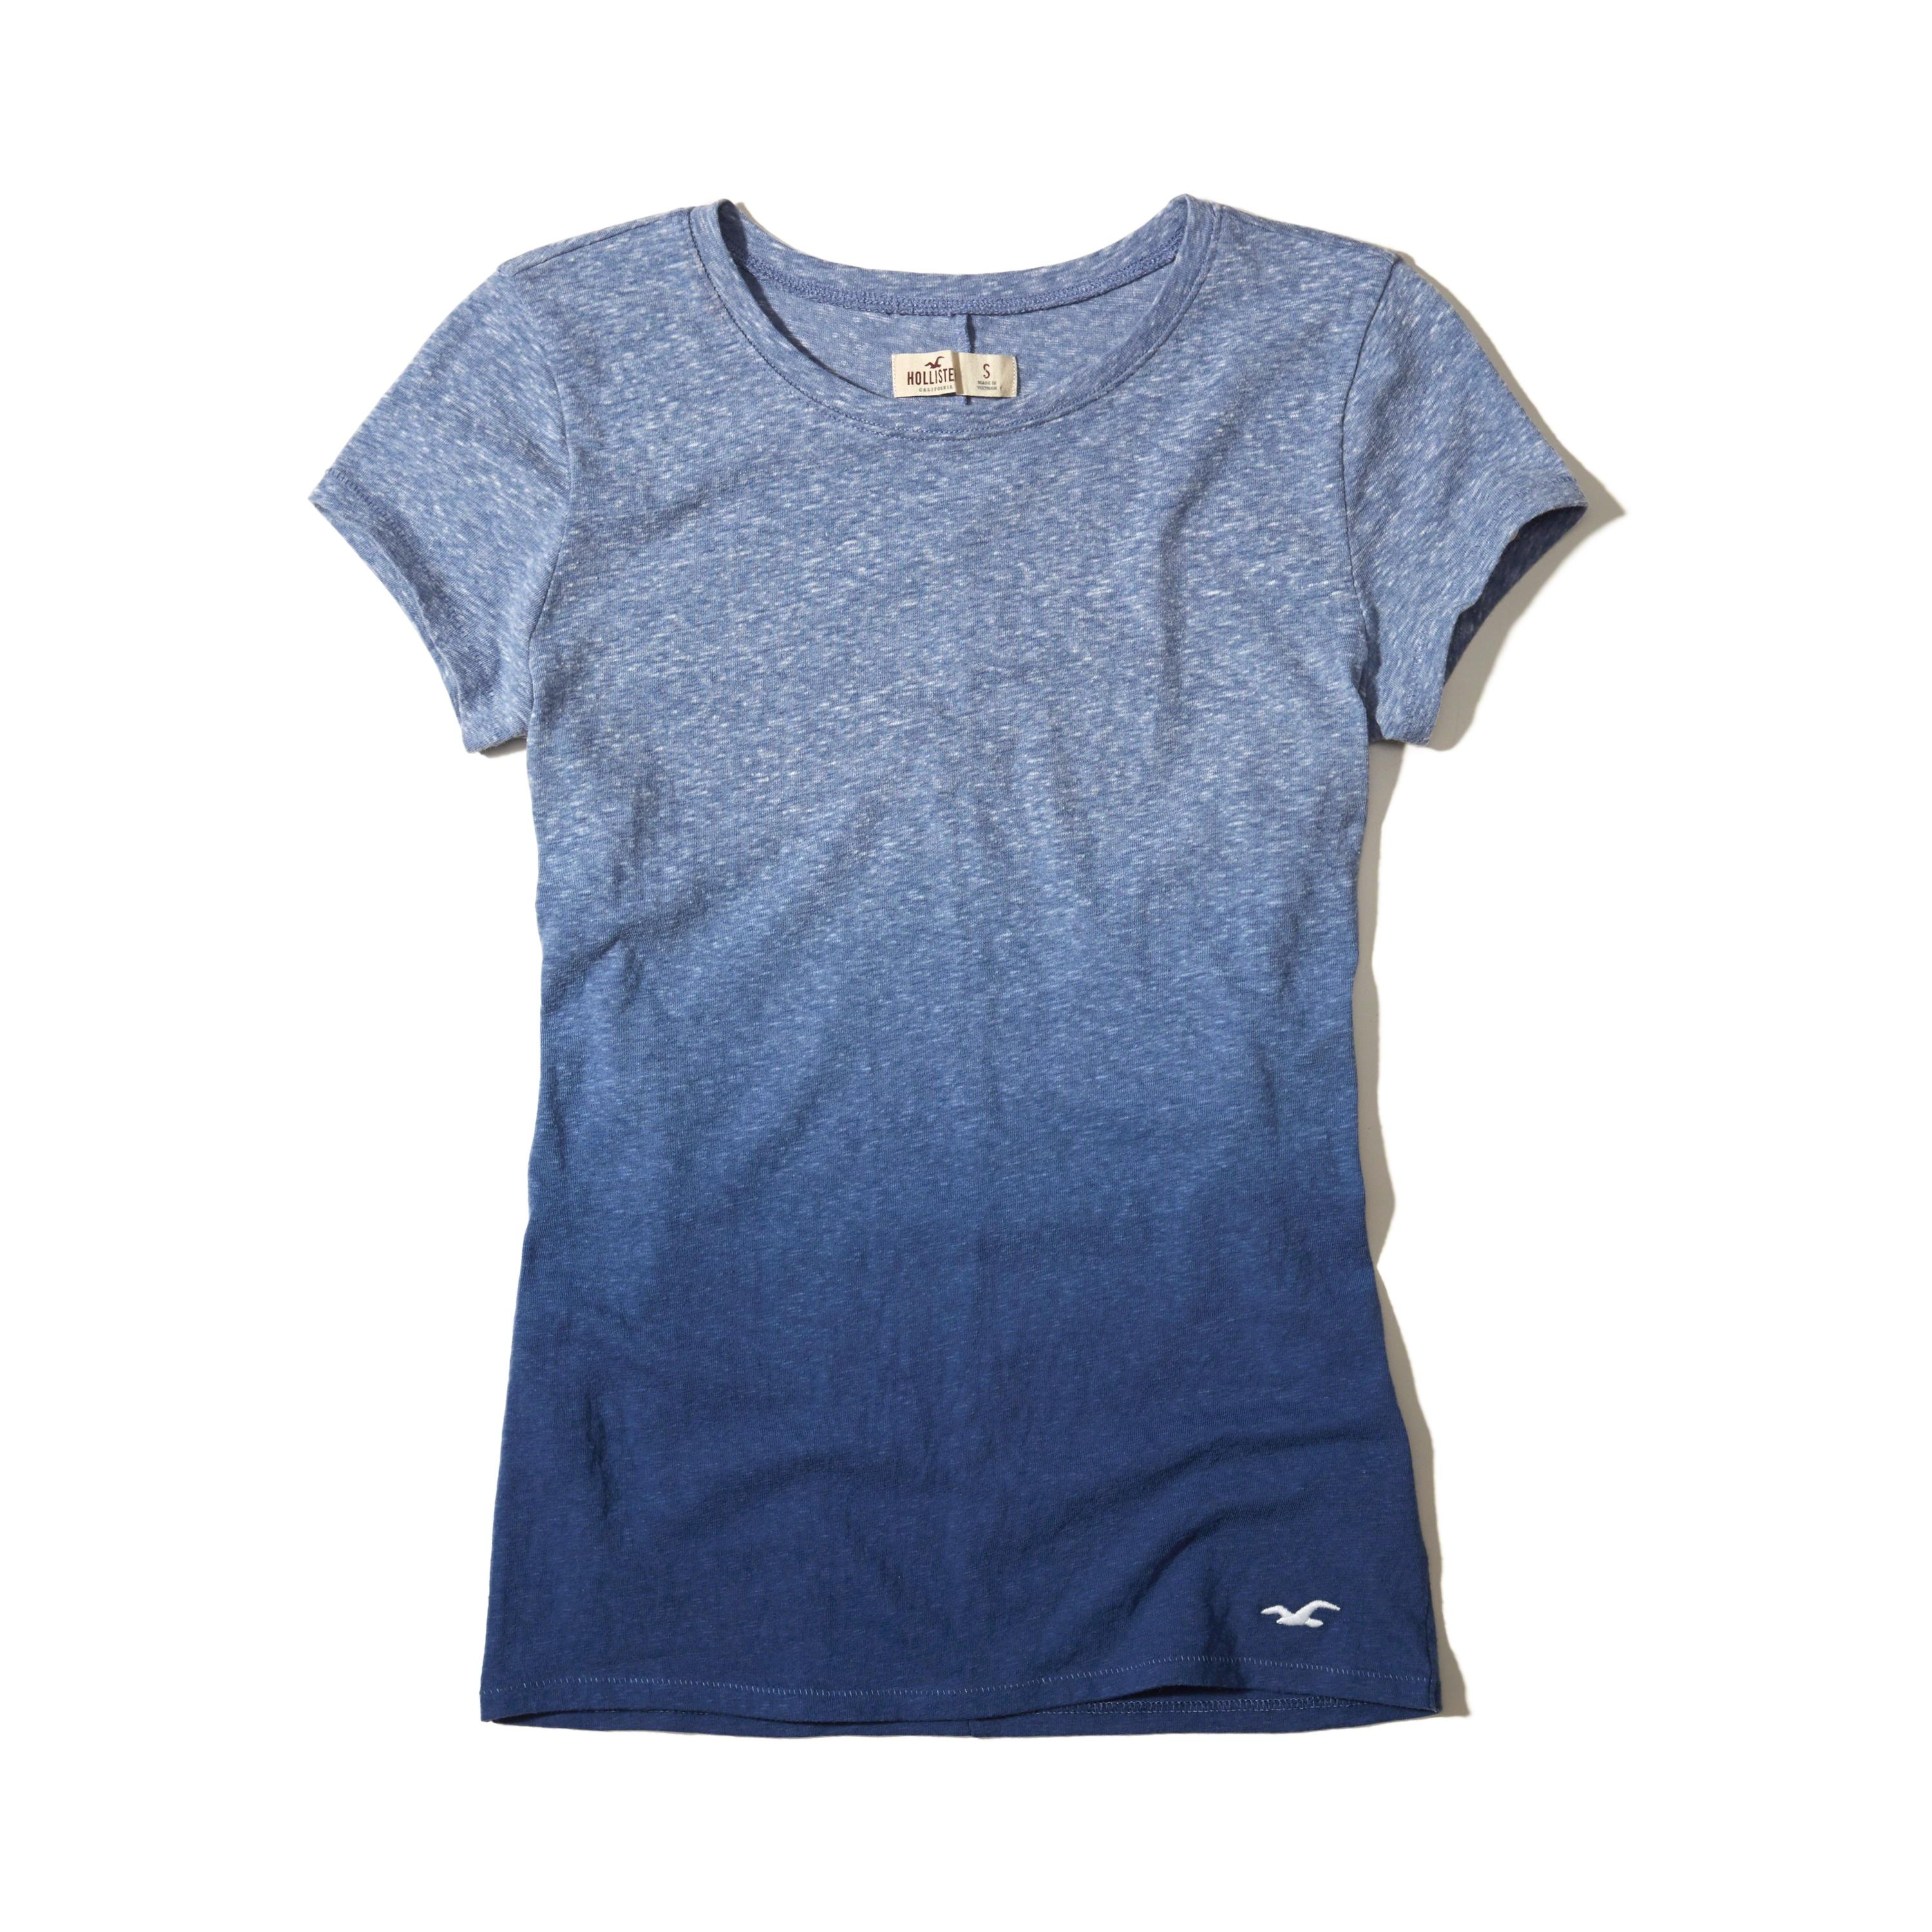 Lyst hollister must have crew t shirt in blue for Must have dress shirts